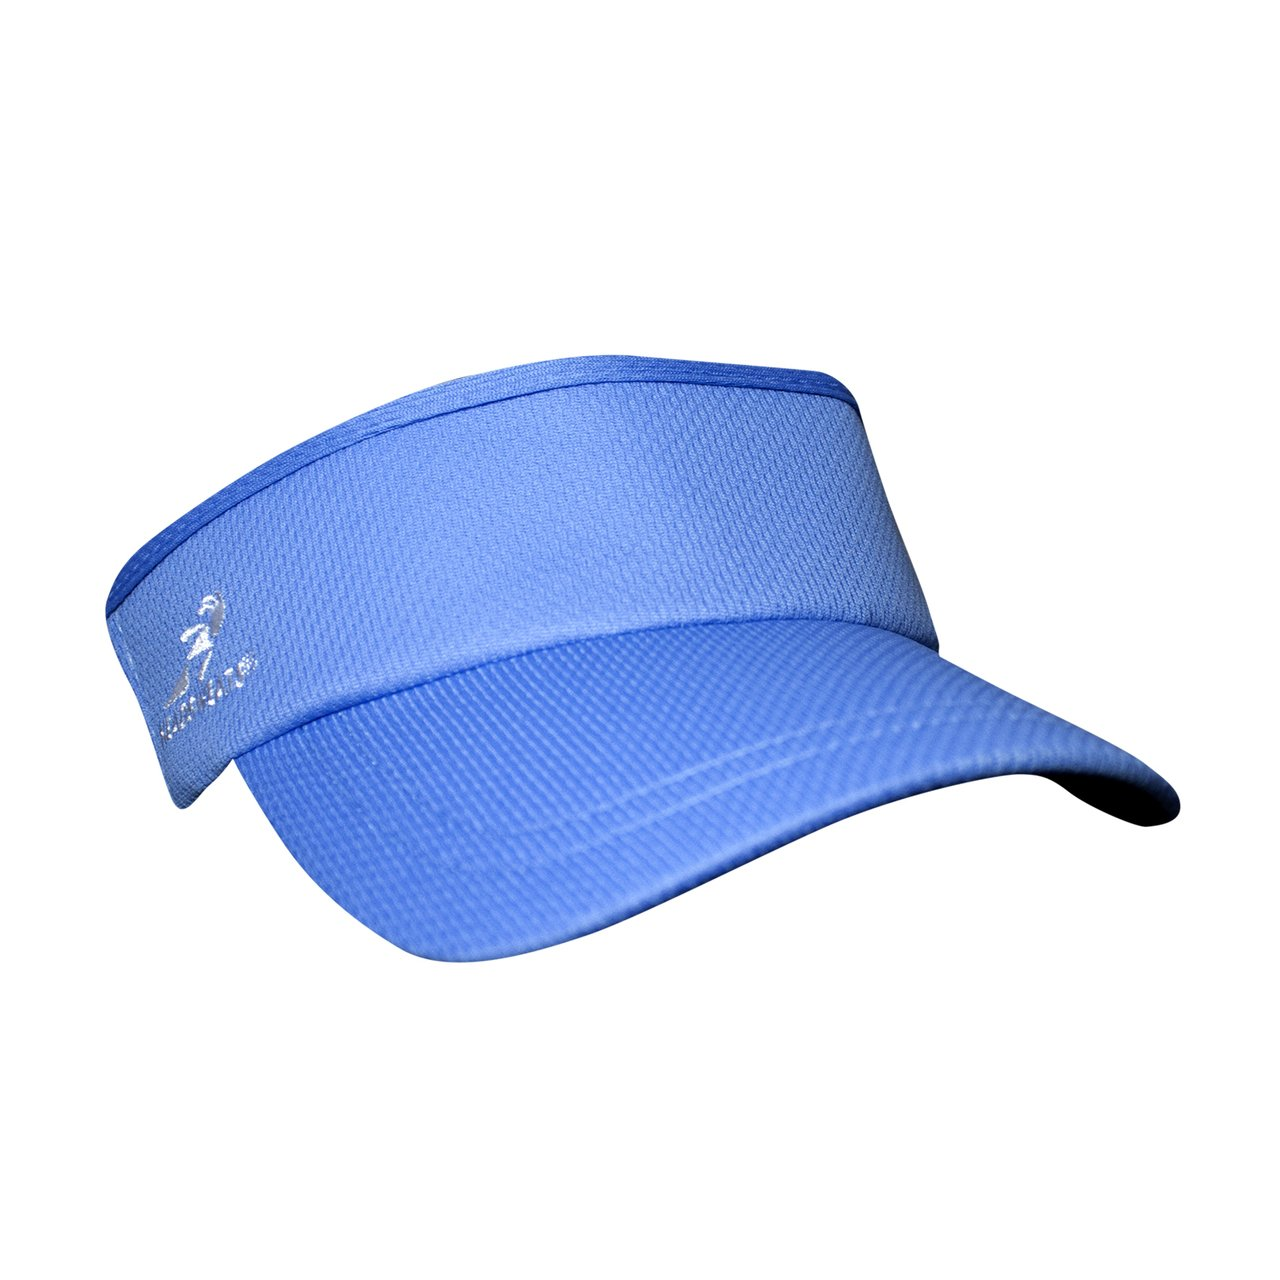 Headsweats Supervisor Headwear, Light Blue, One Size by Headsweats